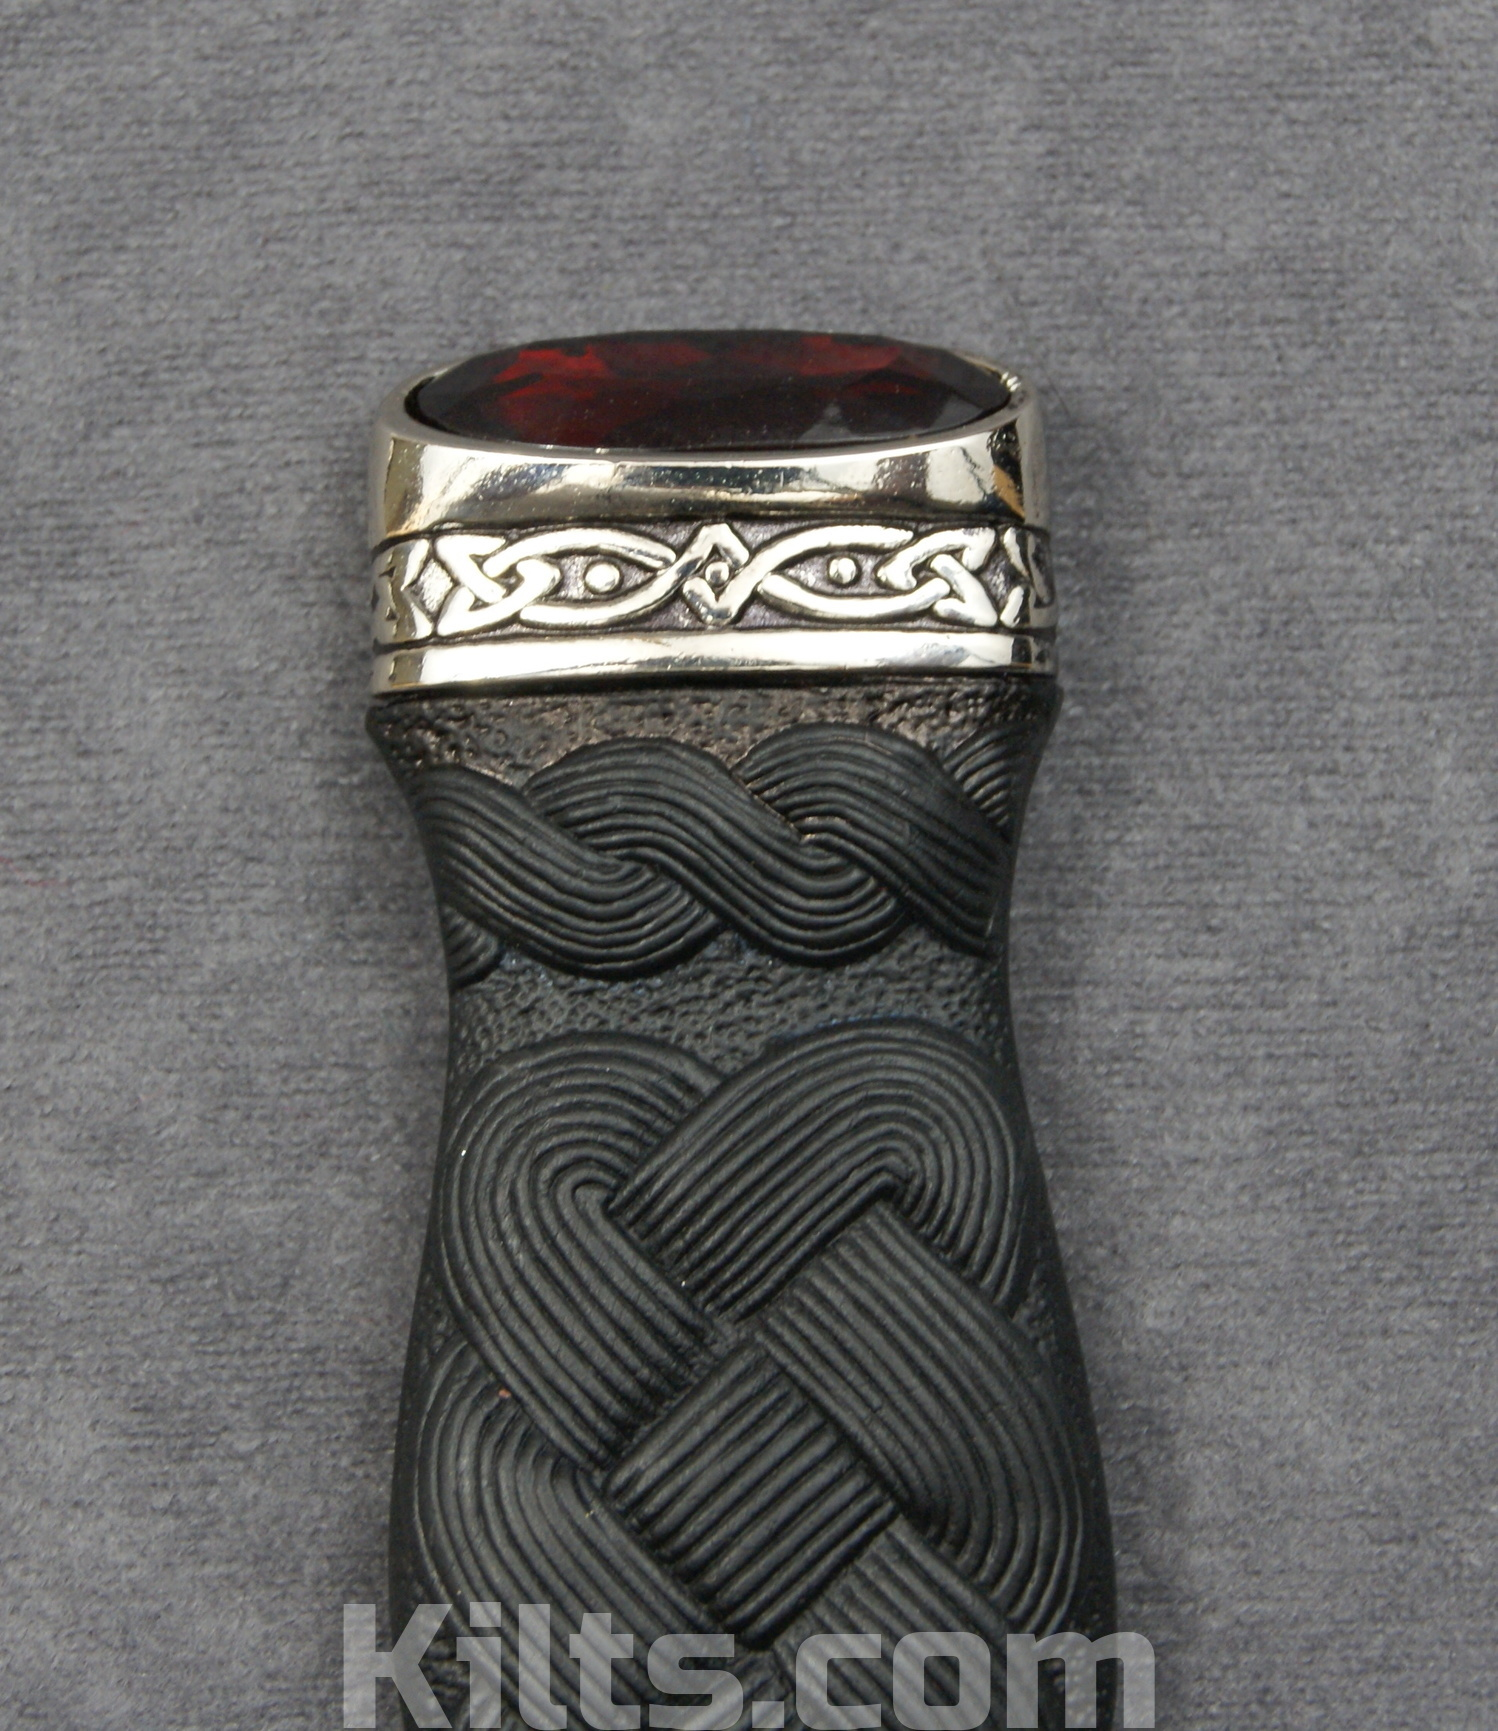 Looking for a Ruby Sgian Dubh or a Ruby Kilt Knife?